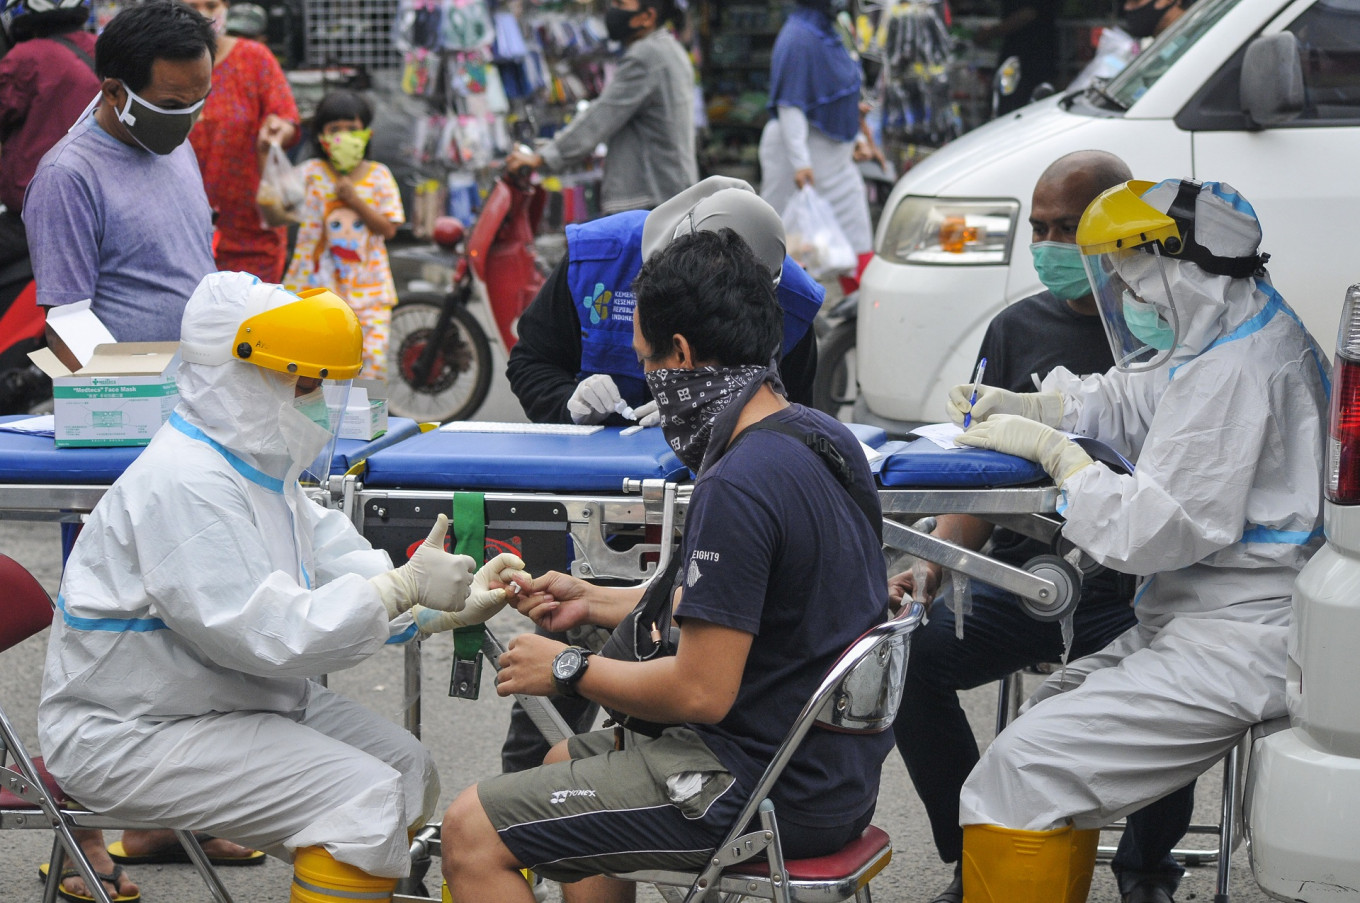 Indonesia's handling of COVID-19 pandemic unsuccessful: Epidemiologist